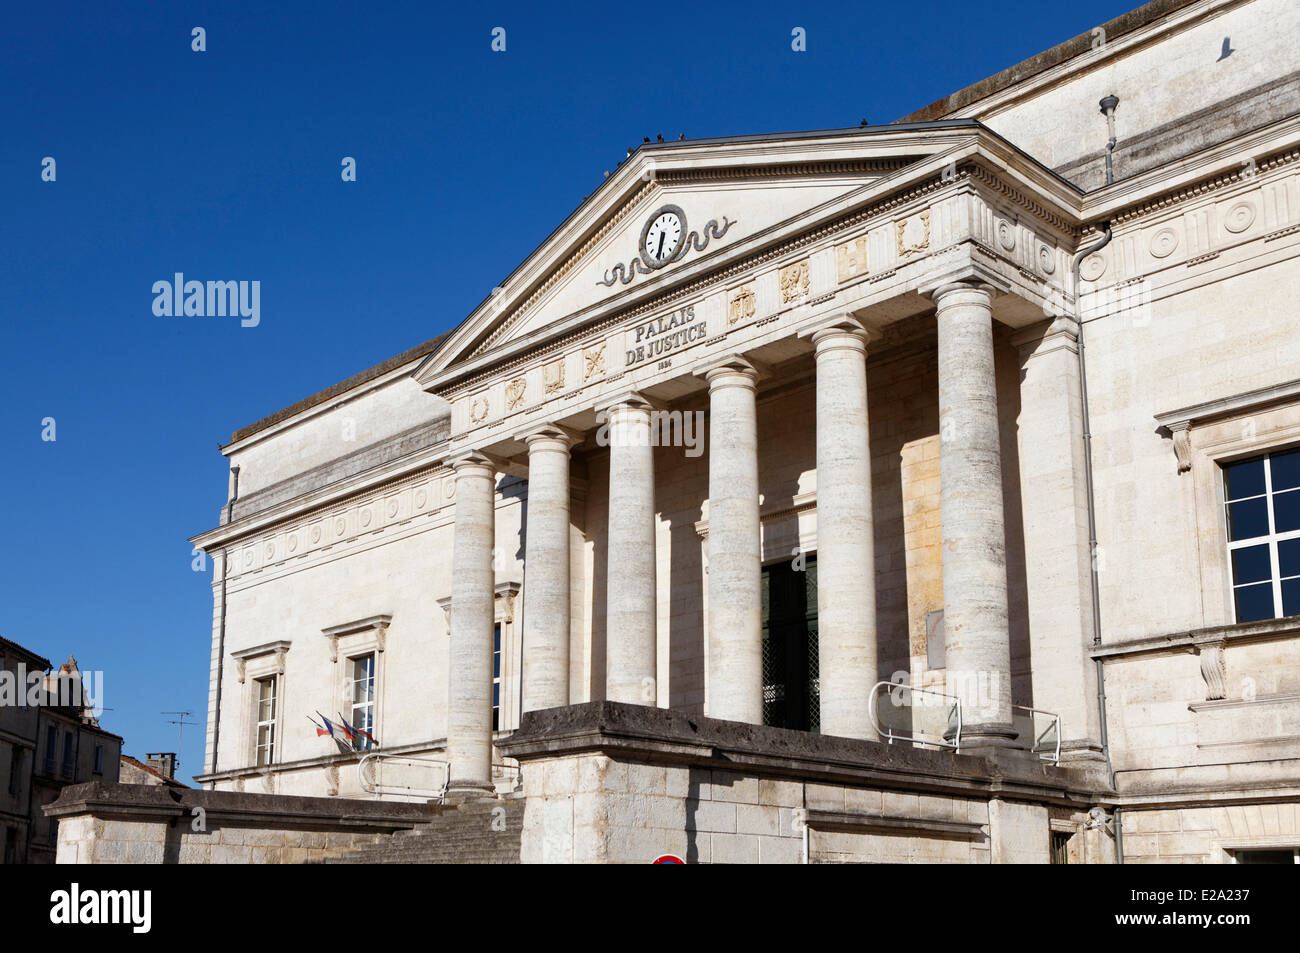 France, Charente, Angouleme, the Courthouse - Stock Image